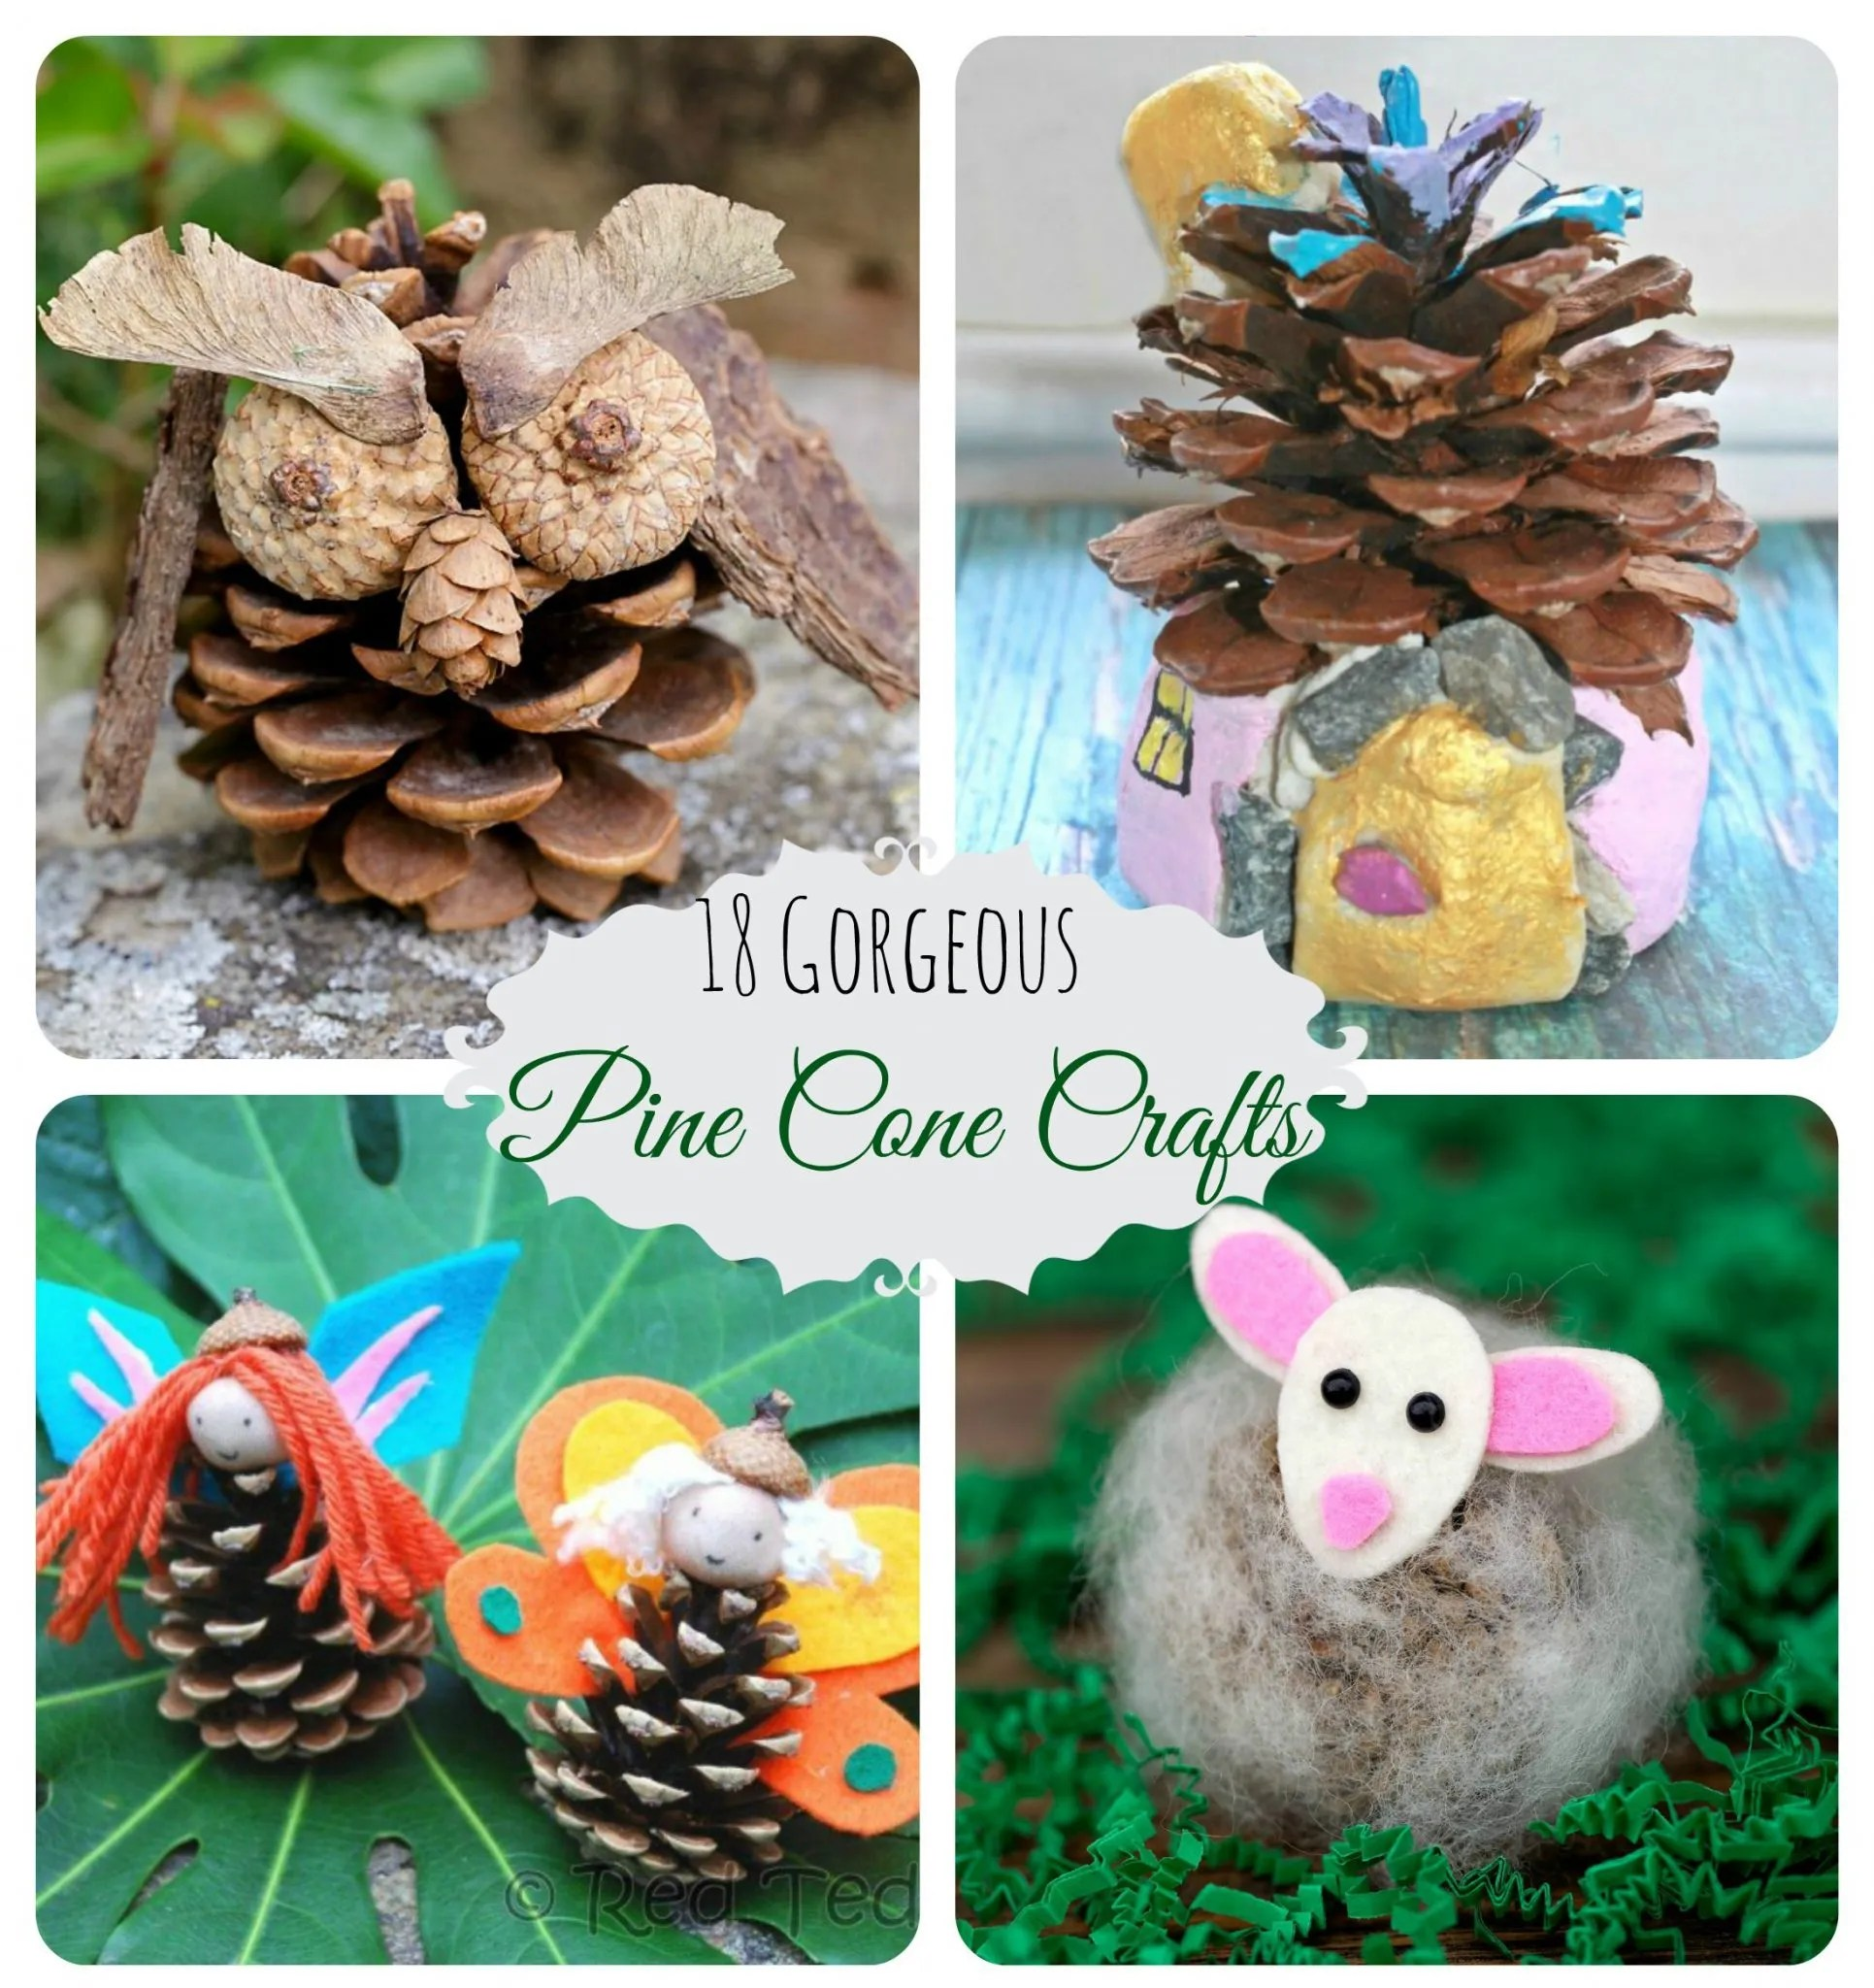 18 Gorgeous Pine Cone Crafts The Pinterested Parent